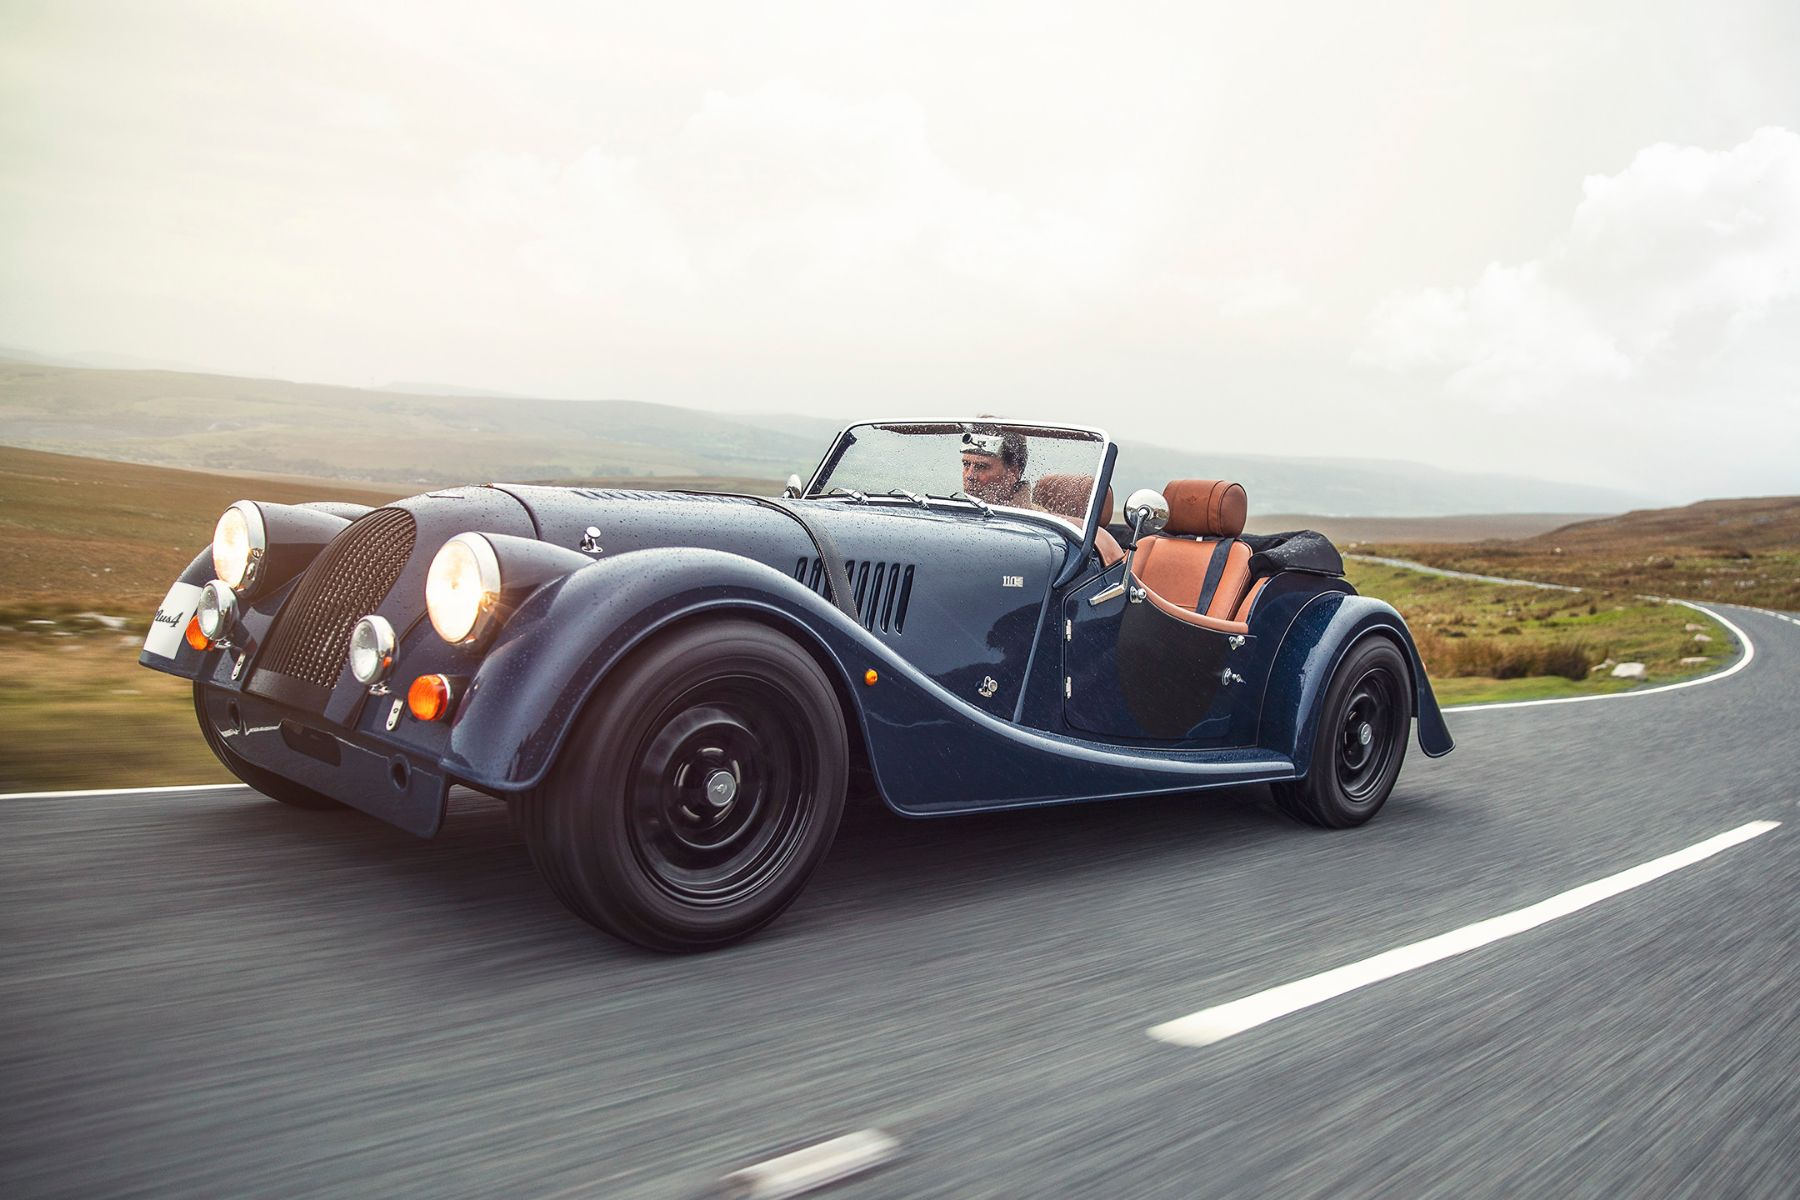 Morgan 110 years